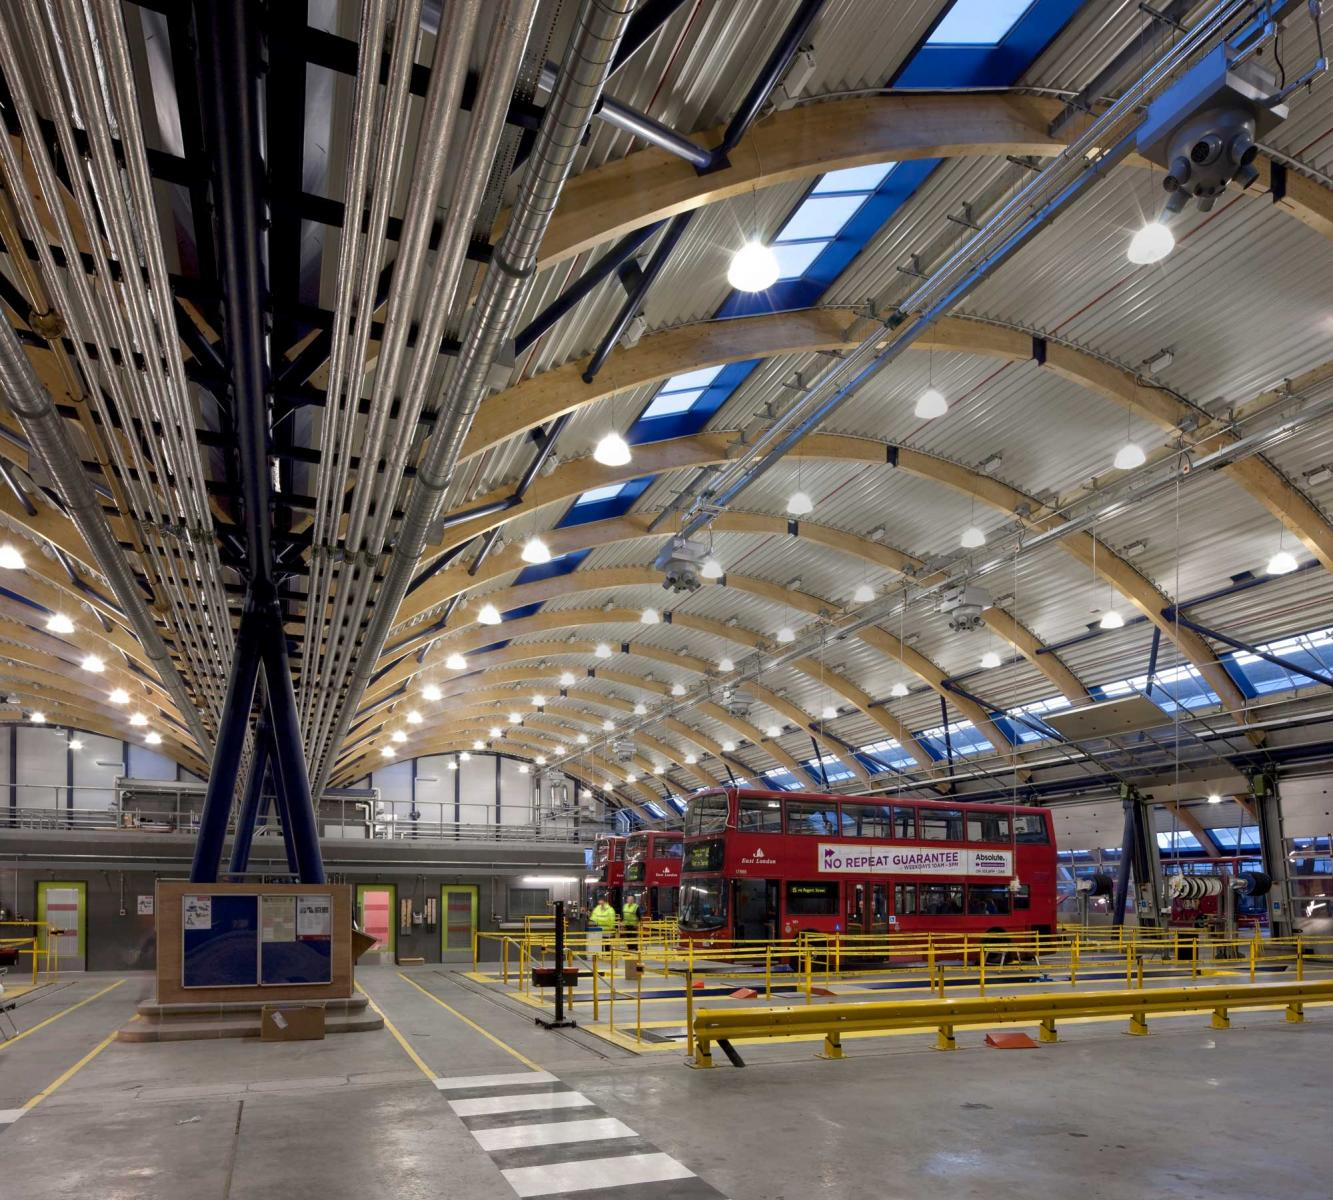 TfL West Ham Bus Garage, London - Garage workshop interior